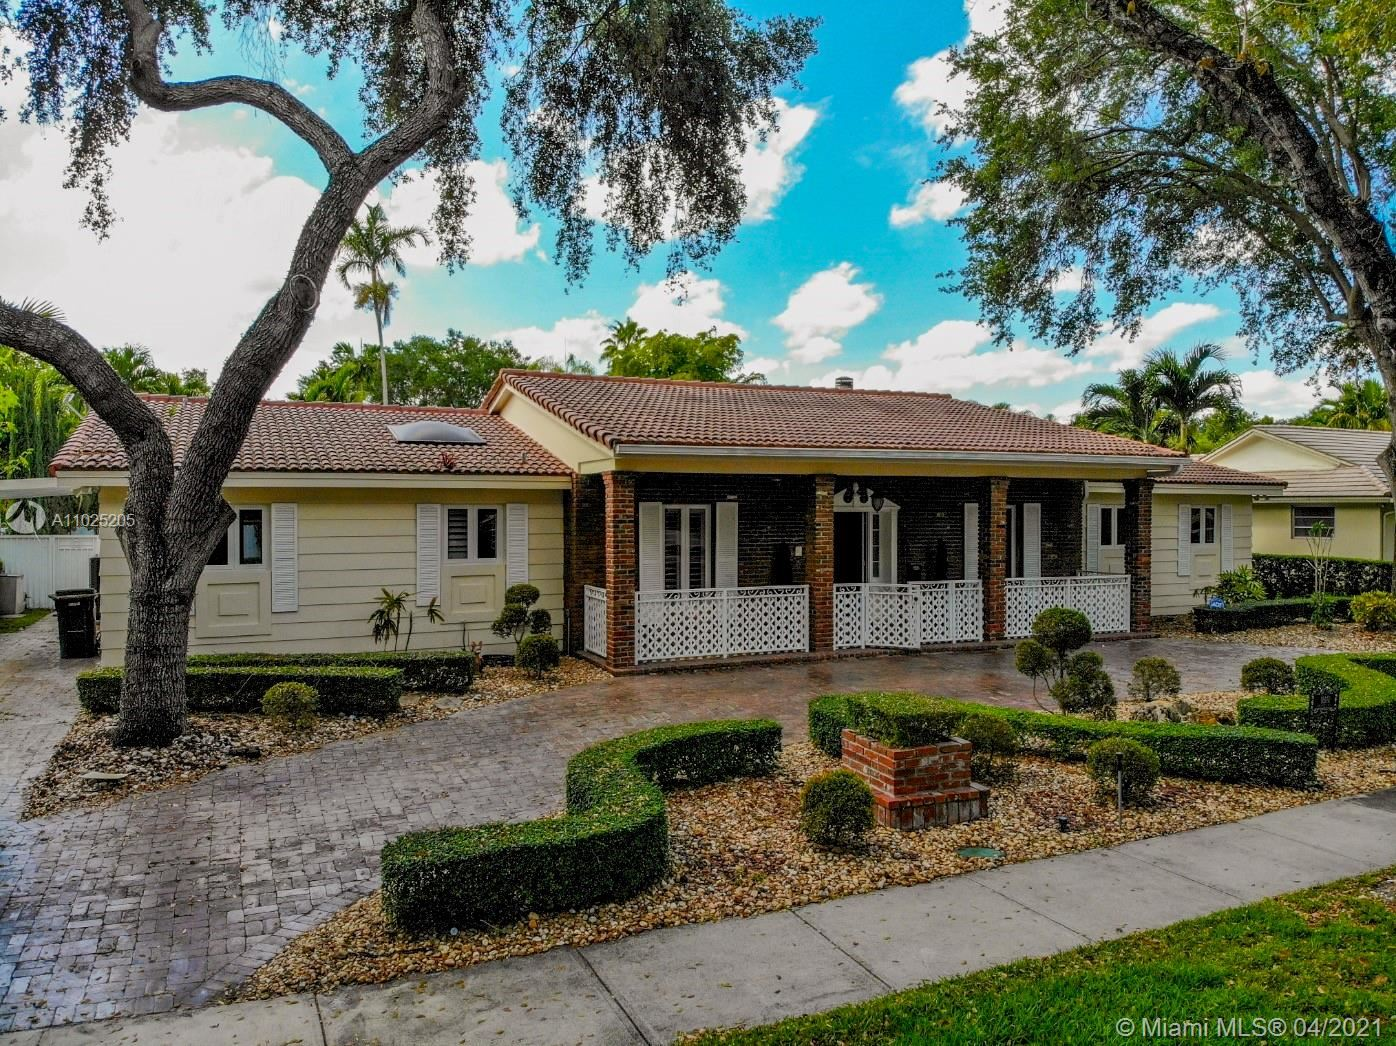 16140 Aberdeen Way, Miami Lakes, FL 33014 - #: A11025205